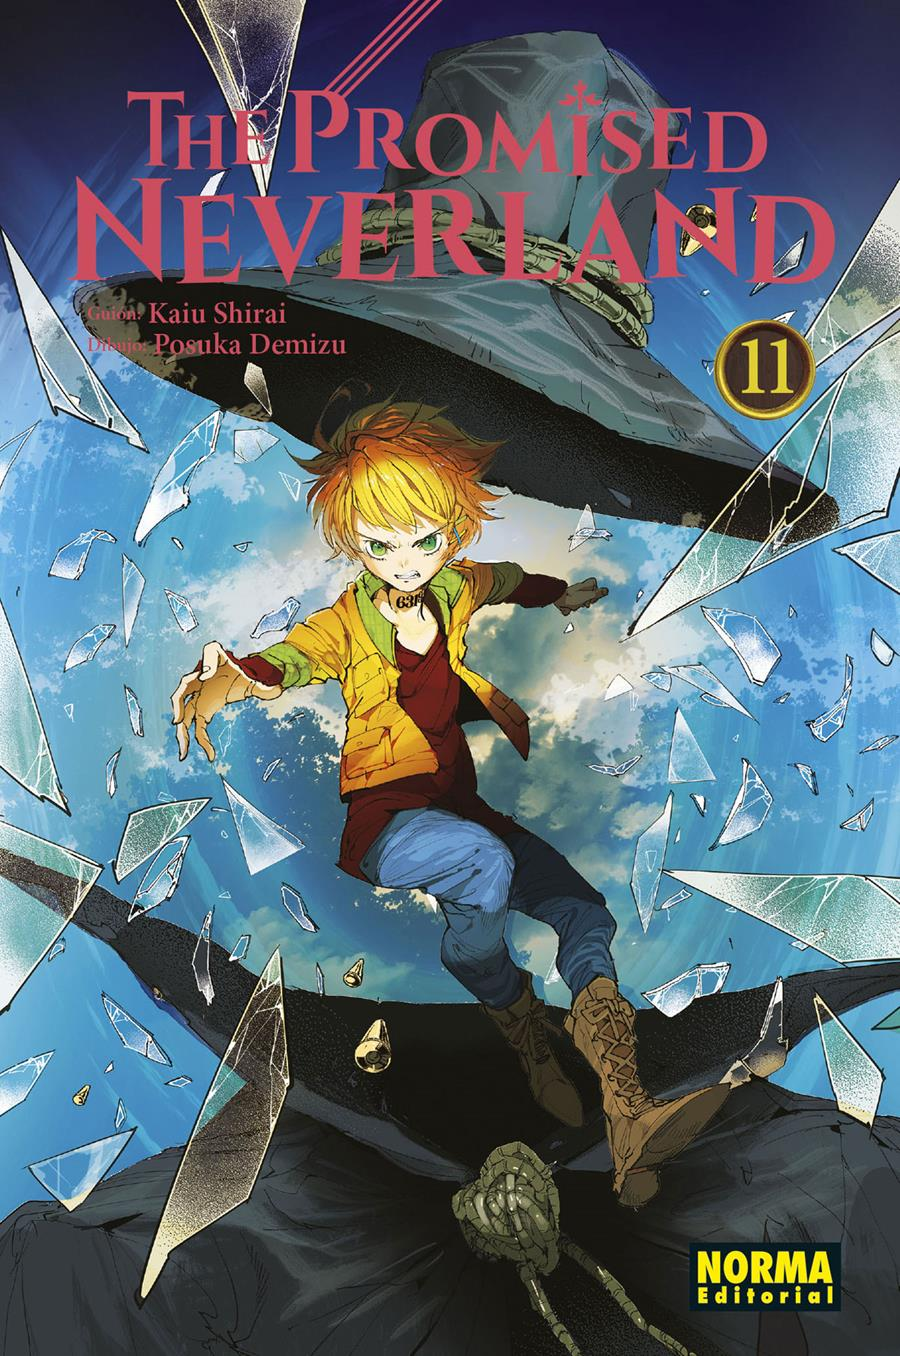 The promised neverland 11 | N0420-NOR21 | Kaiu Shirai, Posuka Demizu | Terra de Còmic - Tu tienda de cómics online especializada en cómics, manga y merchandising